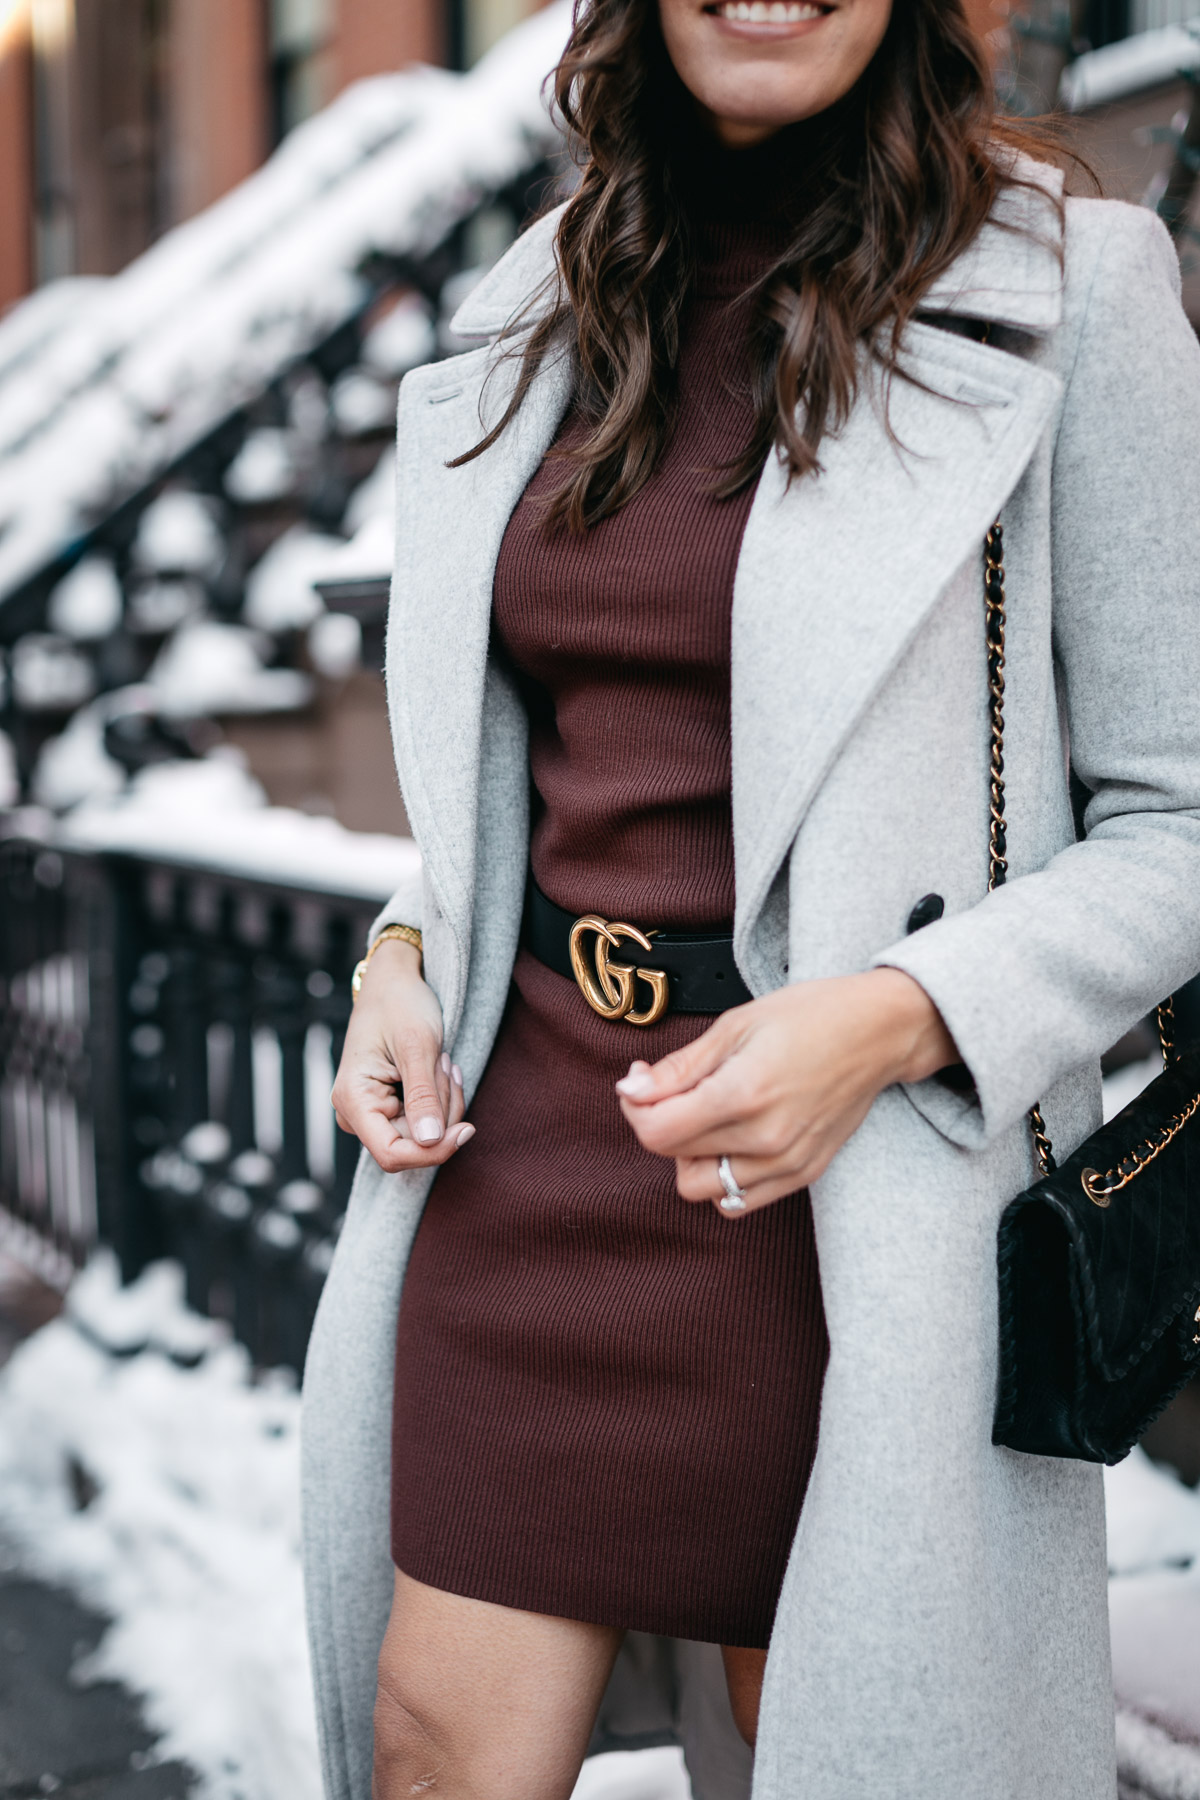 Gucci Double G belt goes well with burgundy sweater dress and grey Club Monaco coat worn by Amanda of A Glam Lifestyle blog during NYFW Spring 2017